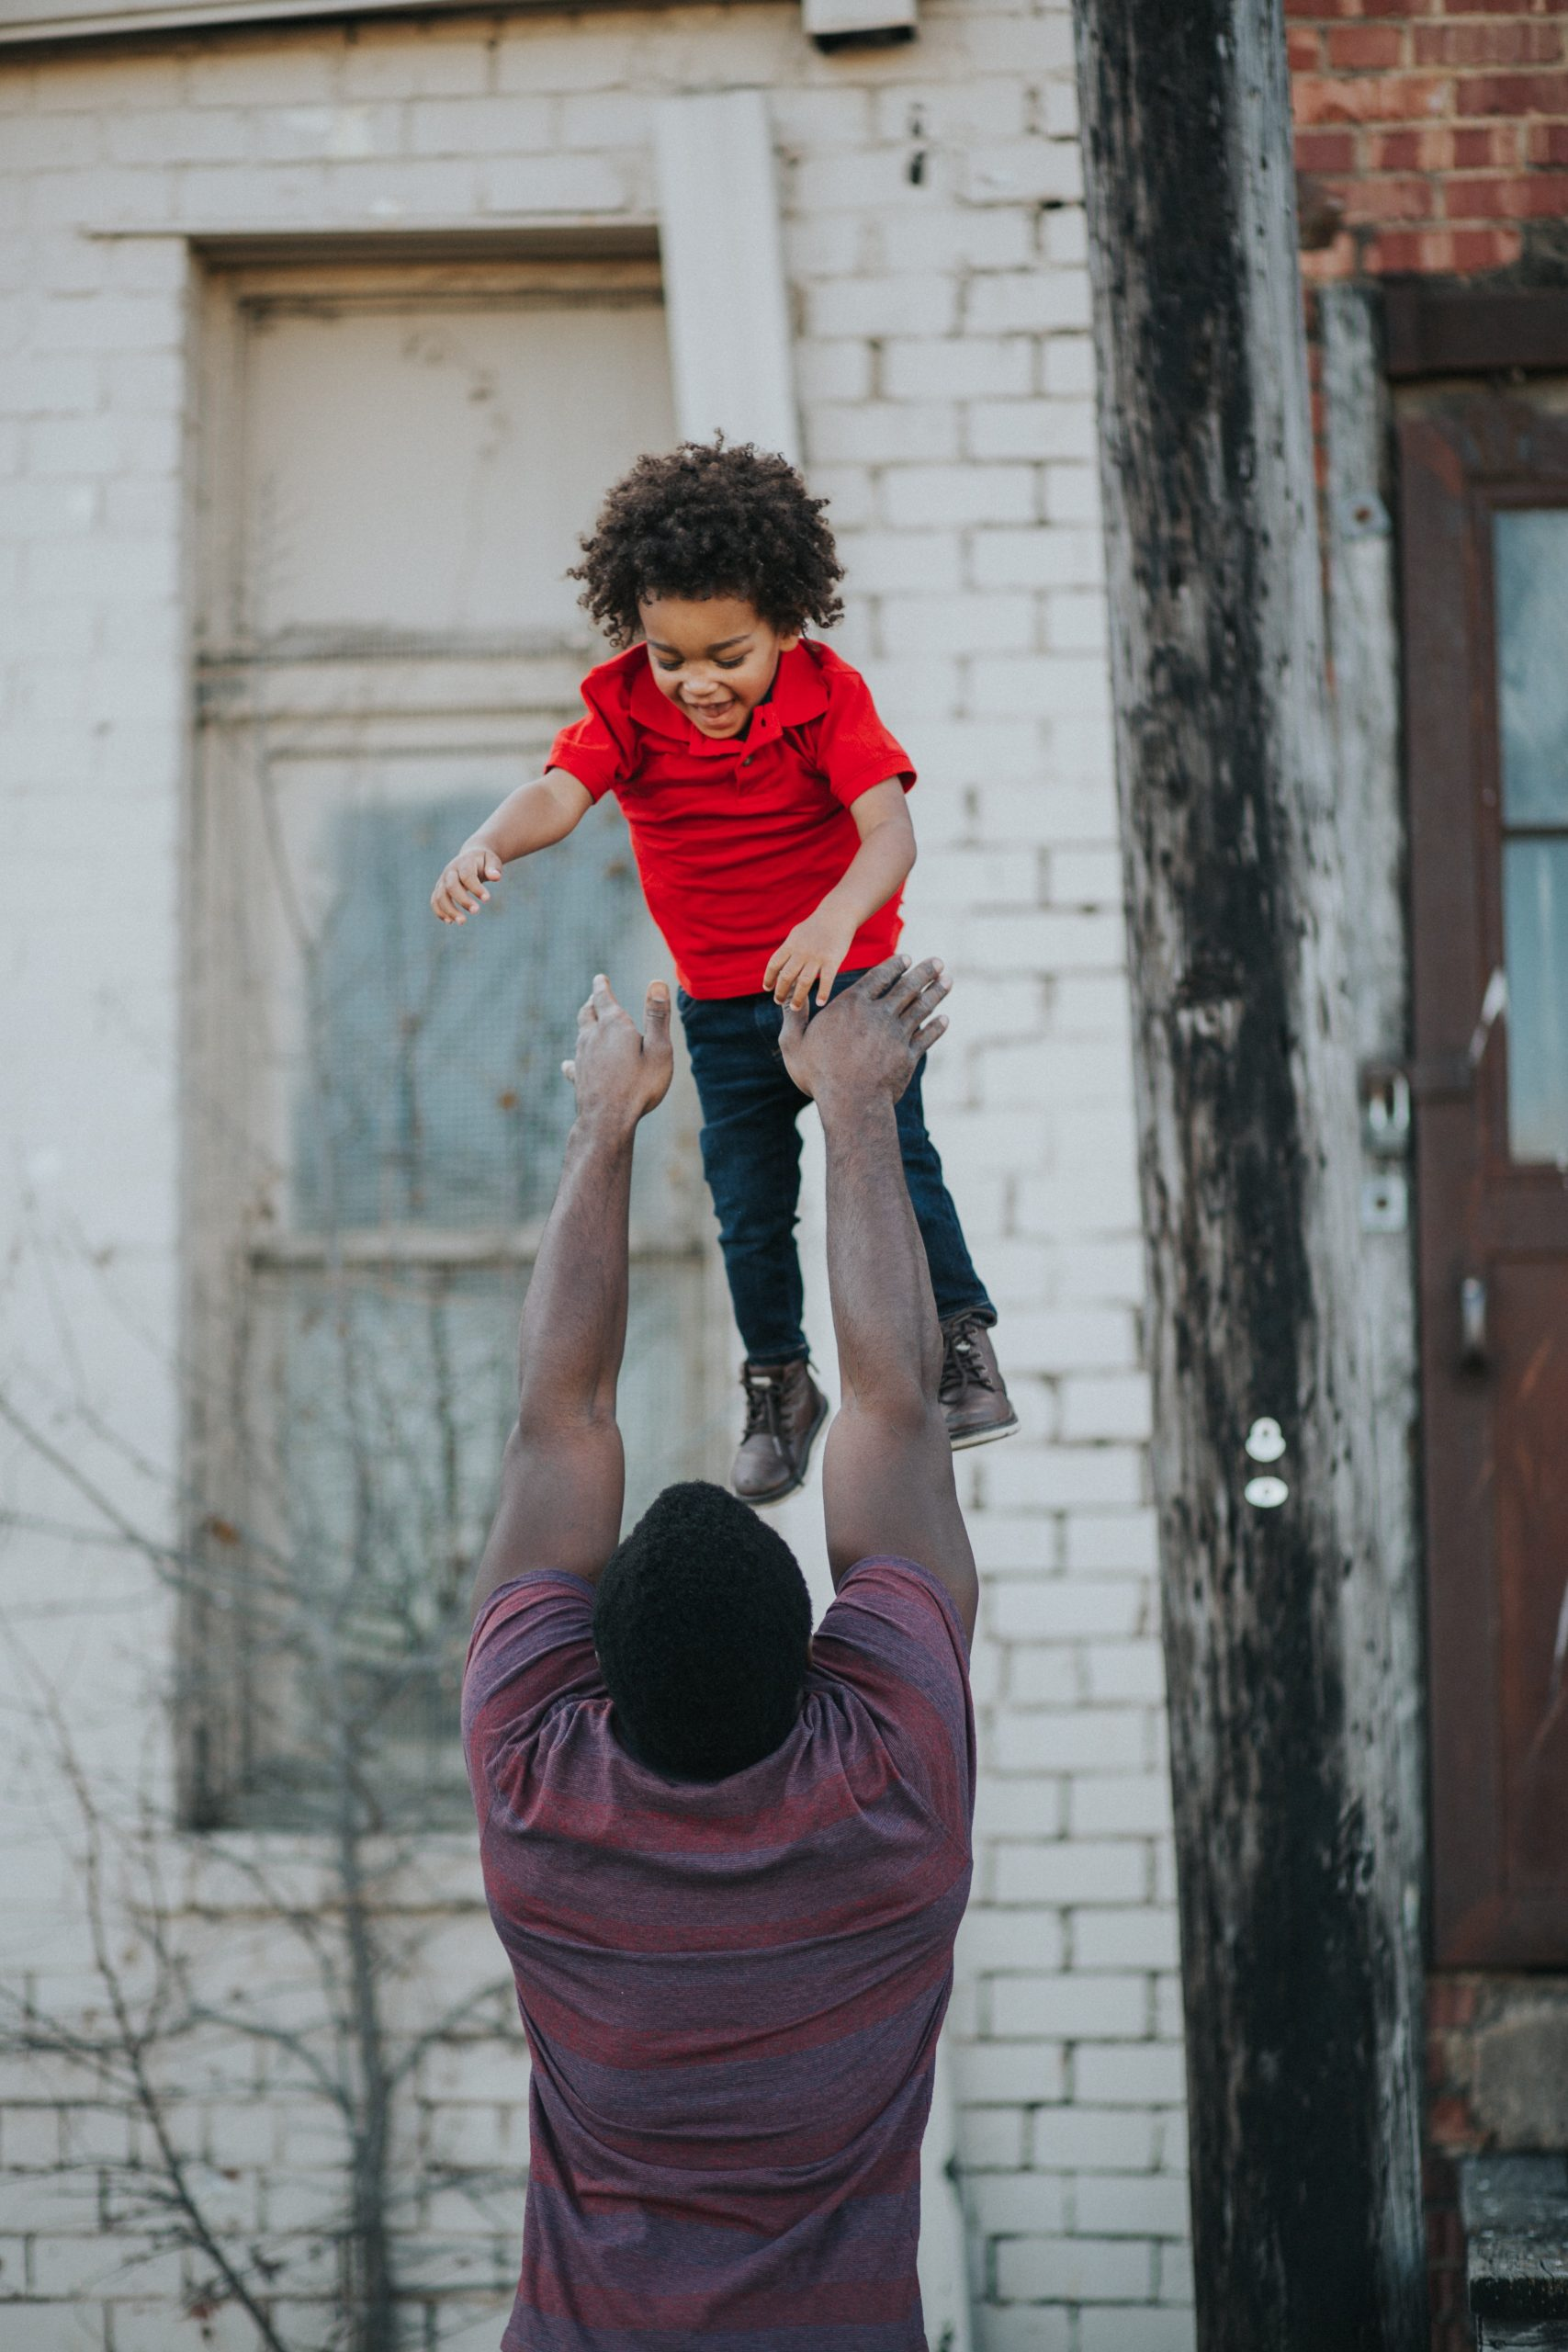 Deeply hued Black man in maroon shirt playfully throwing son in the air.